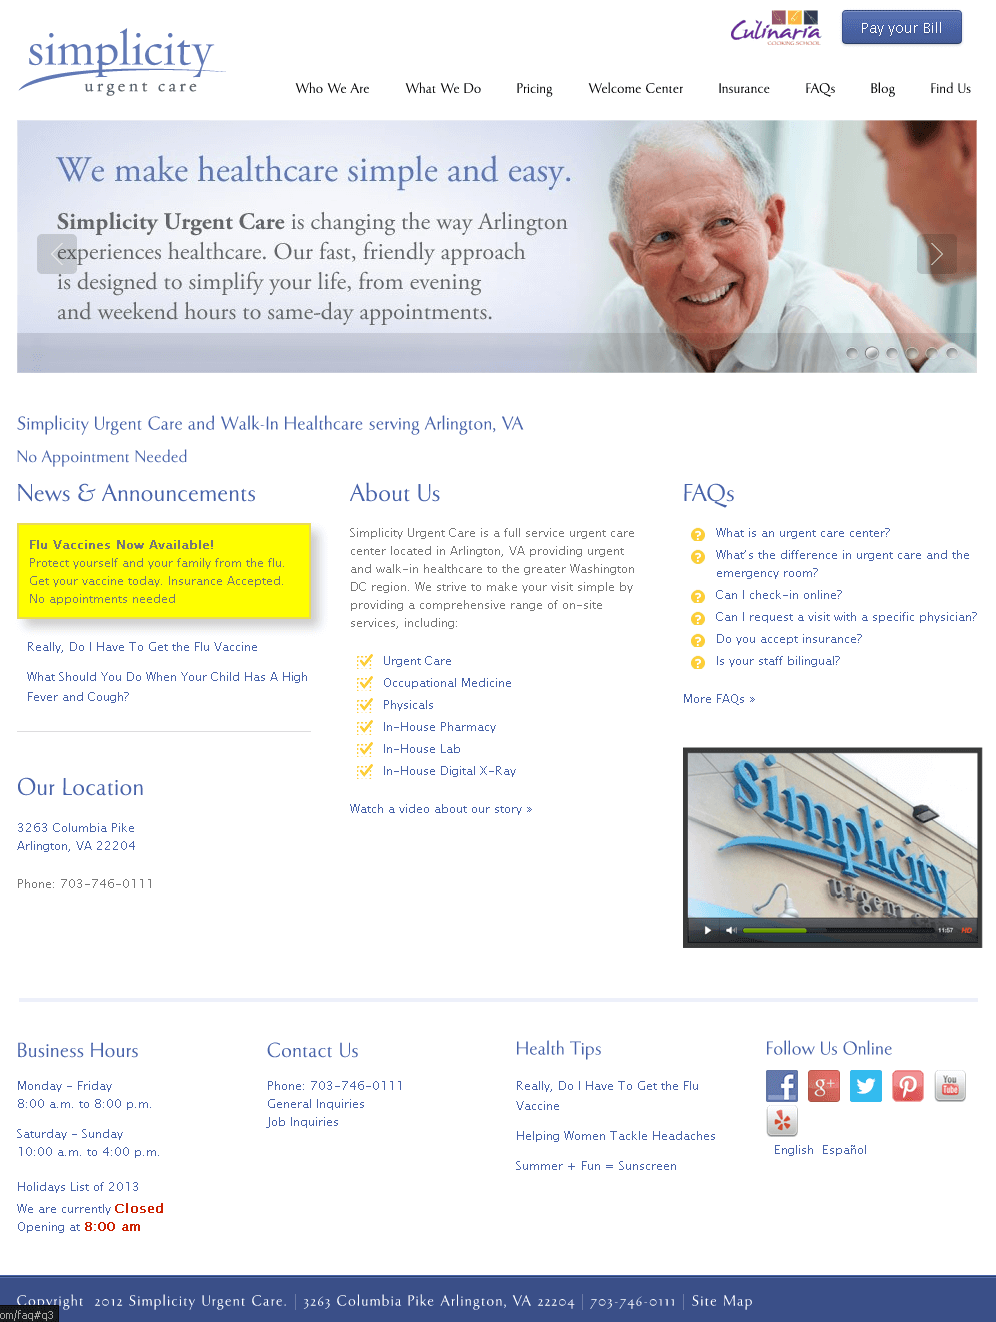 Website for Hospital 'Simplicity Urgent Care' in Wordpress